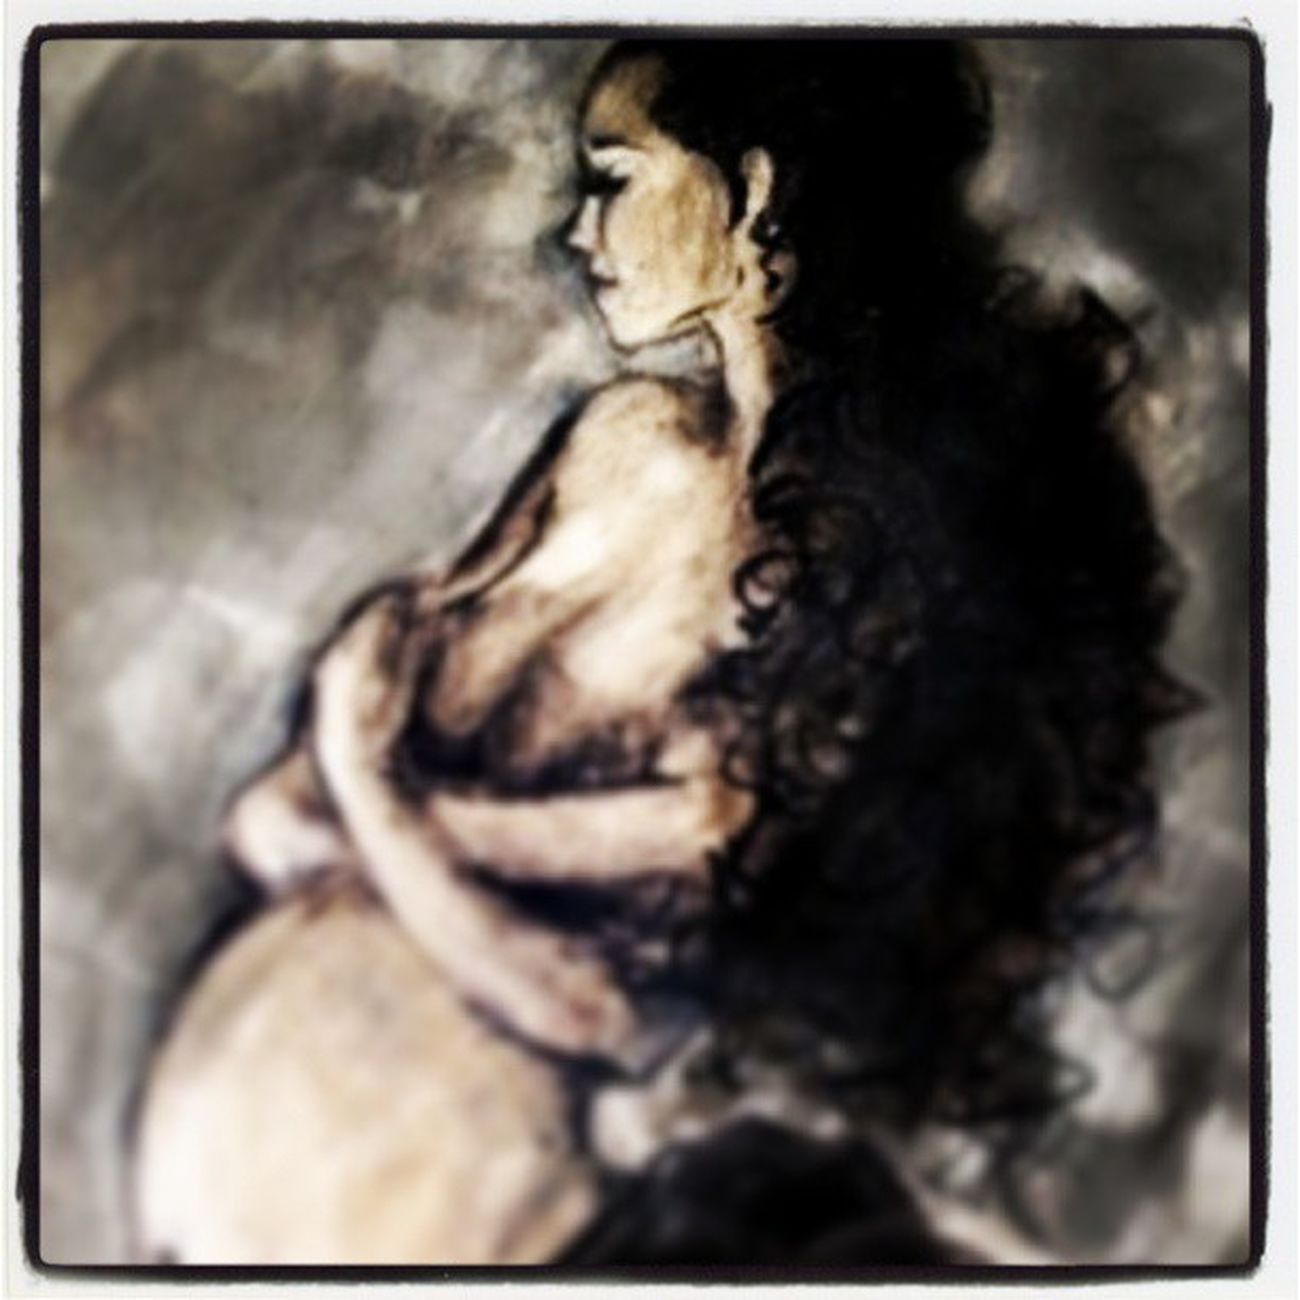 """Embraced"" Pregant Glow Photoshop Digital illustration painting longhair Latin hispanic joy calm beauty quiet grey skirt curly ethnic belly smile nude bare exposes thoughtful slender black contortion art print romance poetic"